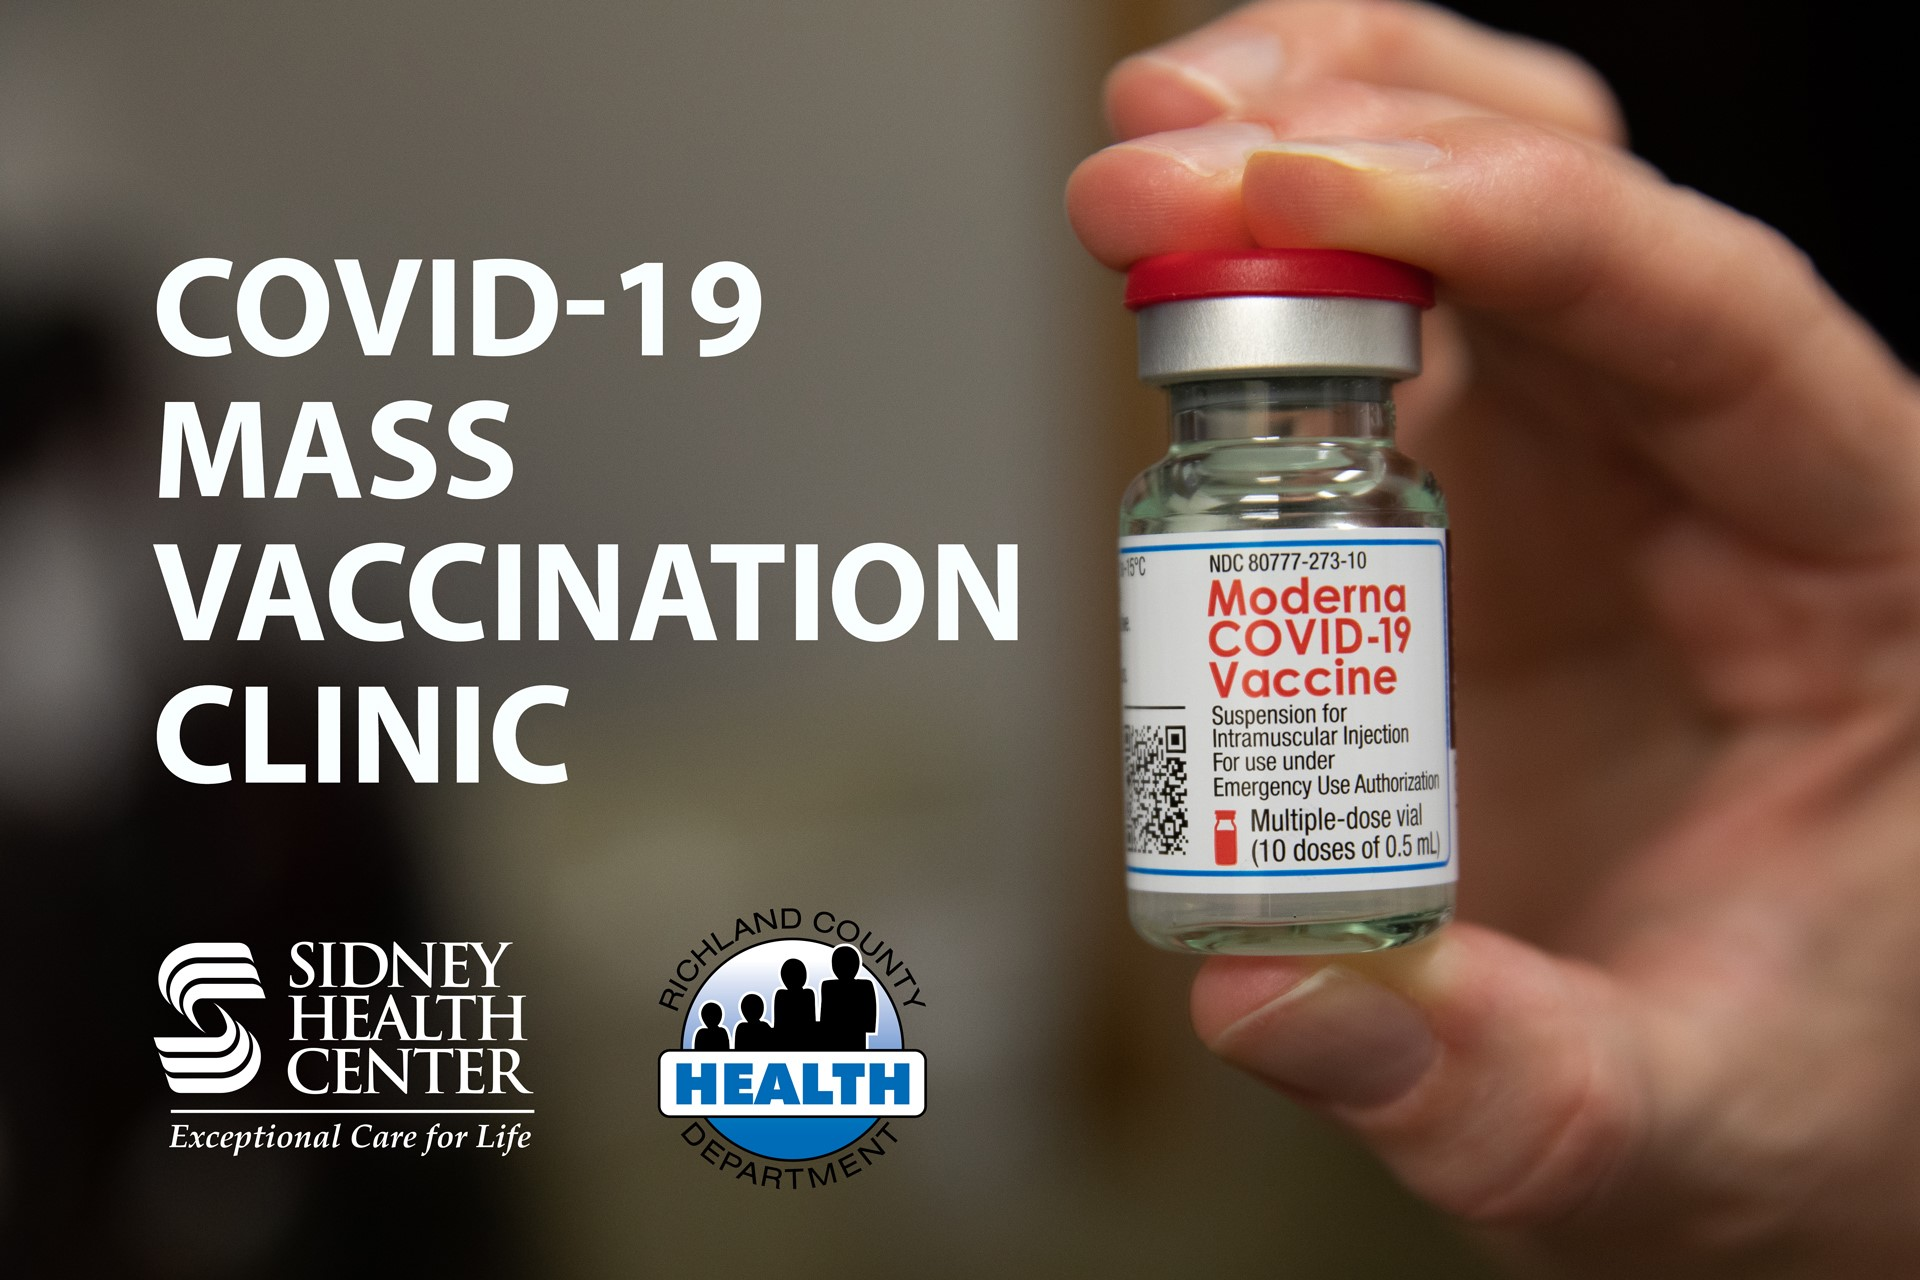 Sidney Health Center partners with Health Department to offer mass COVID-19 vaccination clinic